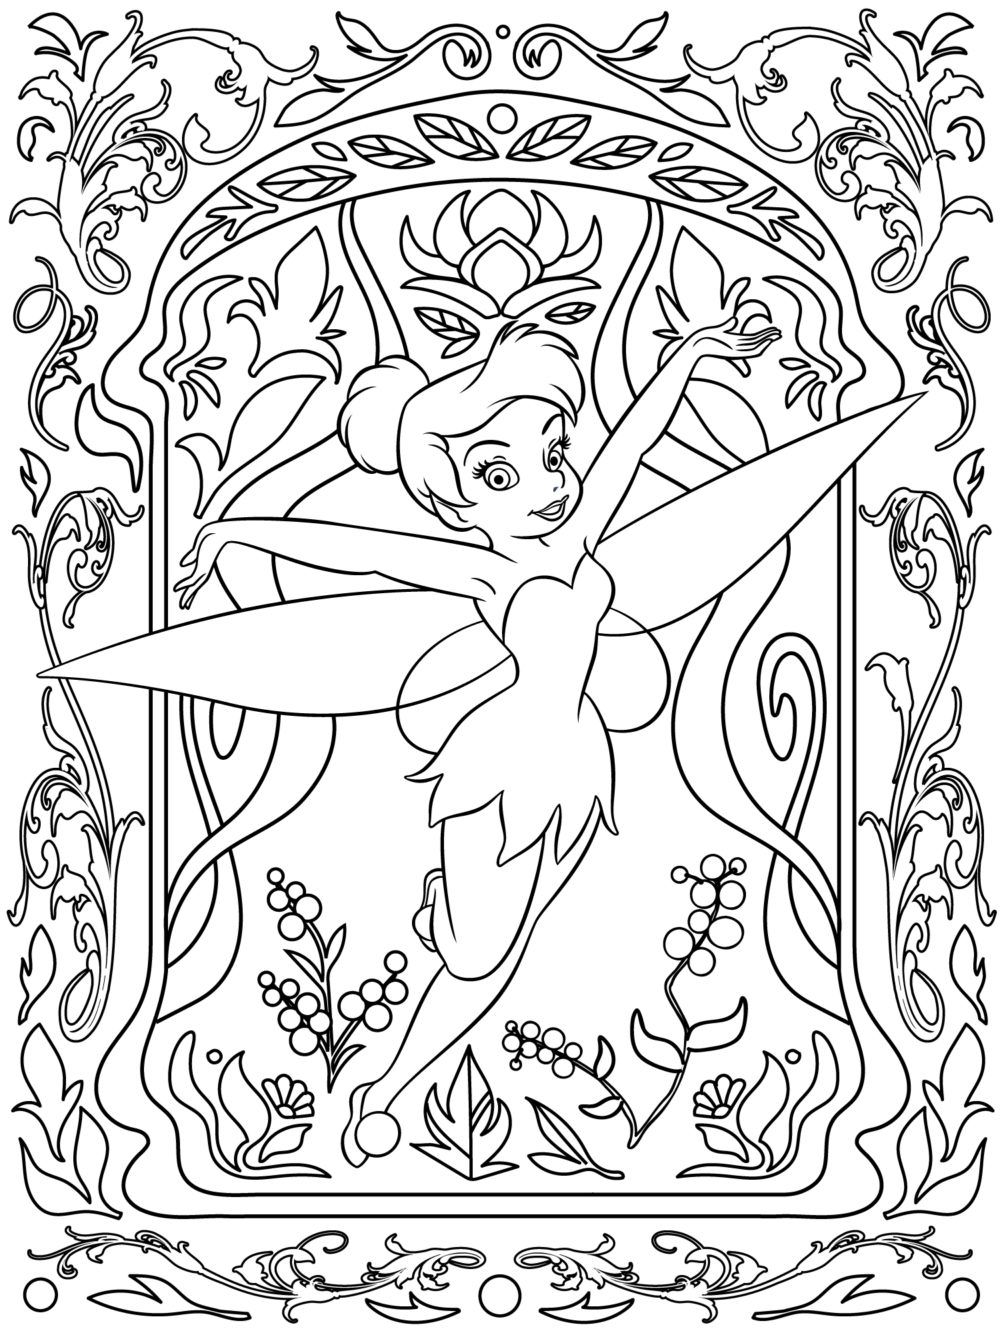 Adult colouring page adultcolouring (With images